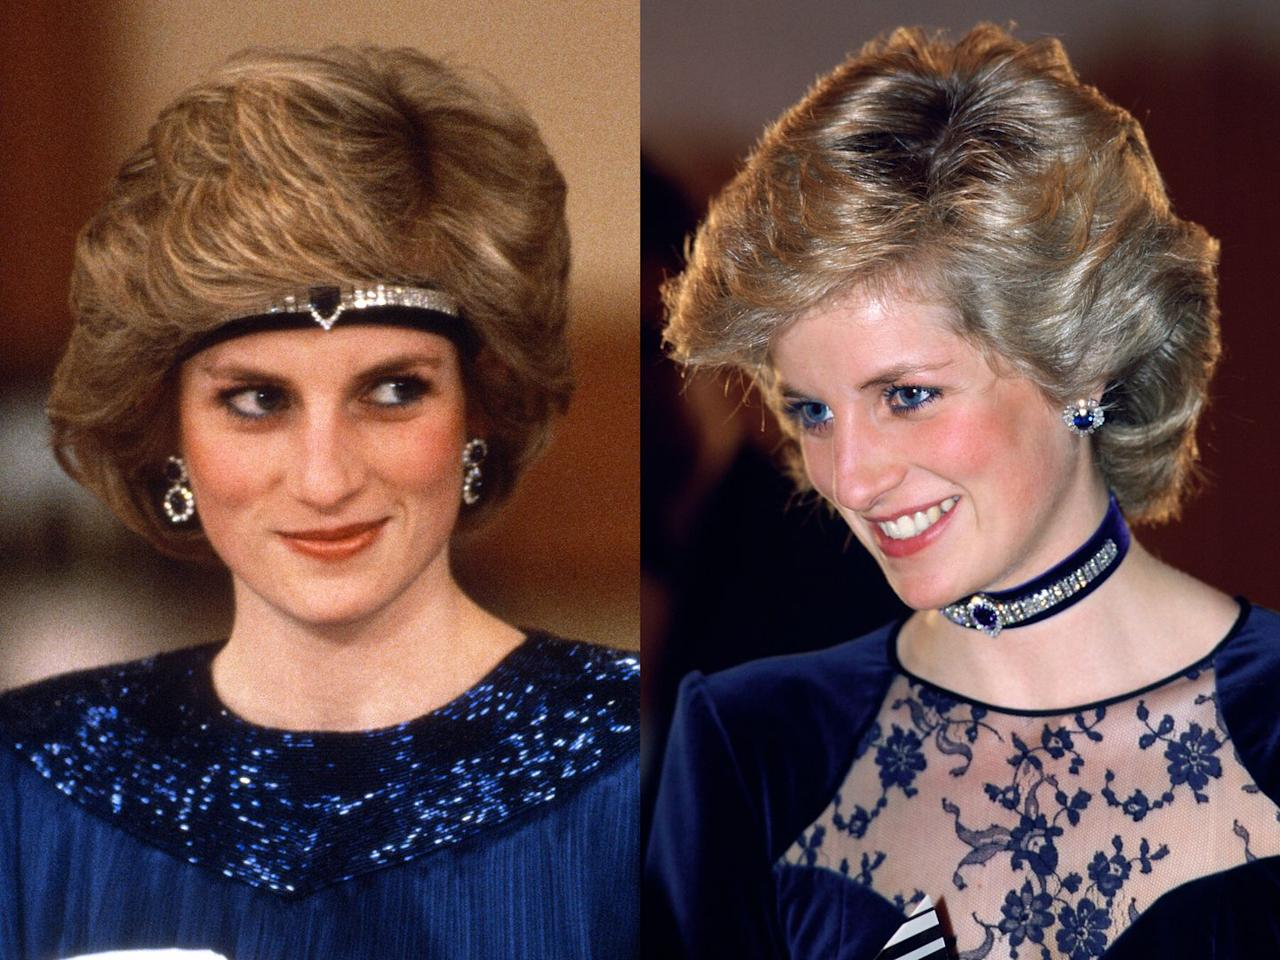 "<p>Diana was even inventive with <a rel=""nofollow"" href=""https://www.townandcountrymag.com/style/jewelry-and-watches/g20682652/princess-diana-jewelry-collection/"">her jewelry</a>. In May of 1986, she wore a headband made from jewels, which she had reset from the Saudi suite of sapphires. The gems reportedly came from a watch, and she wore the new look both around the head and as a choker necklace.</p>"